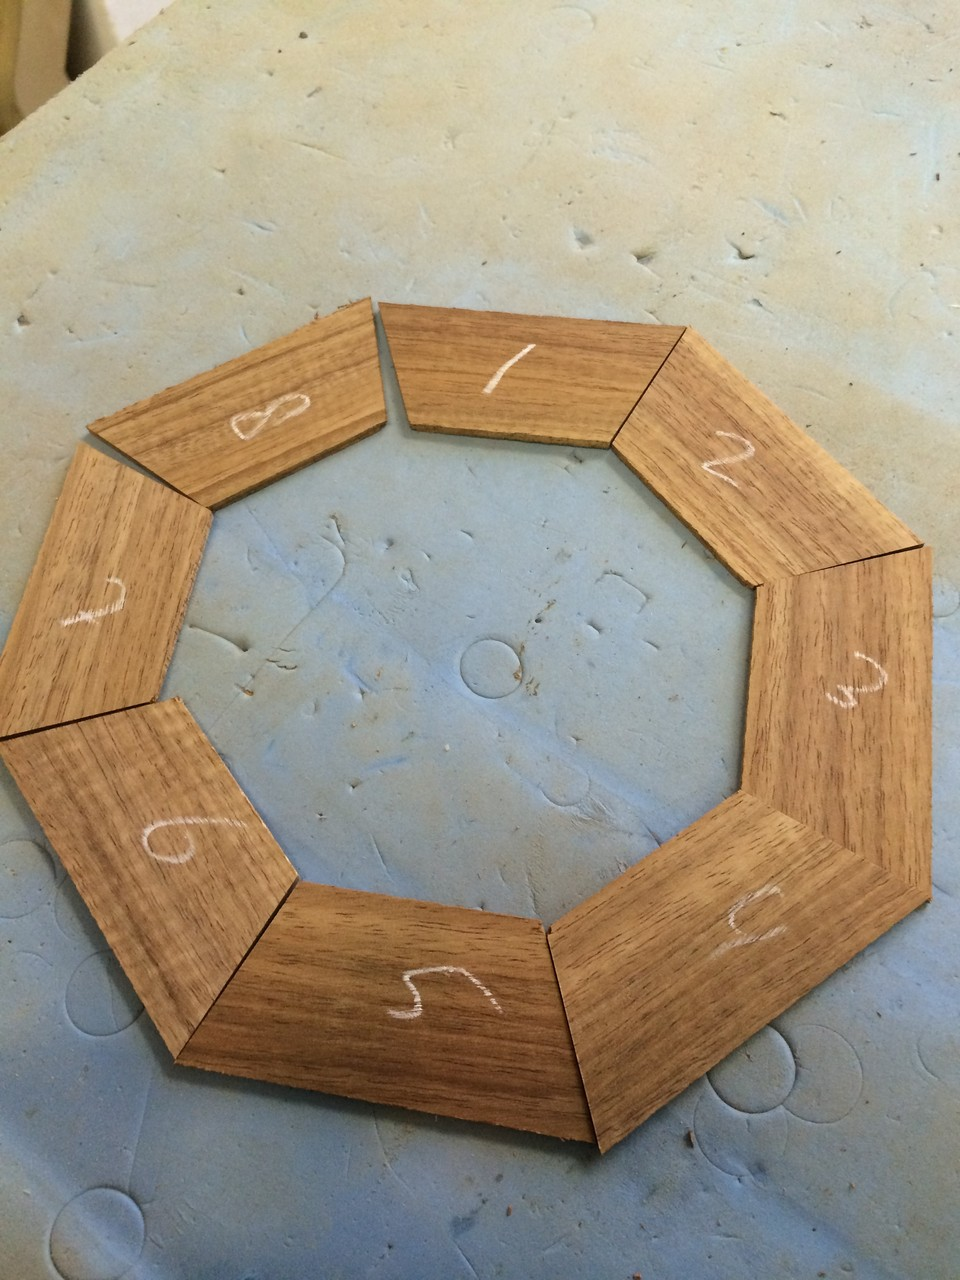 Fitting the Koa rosette segments